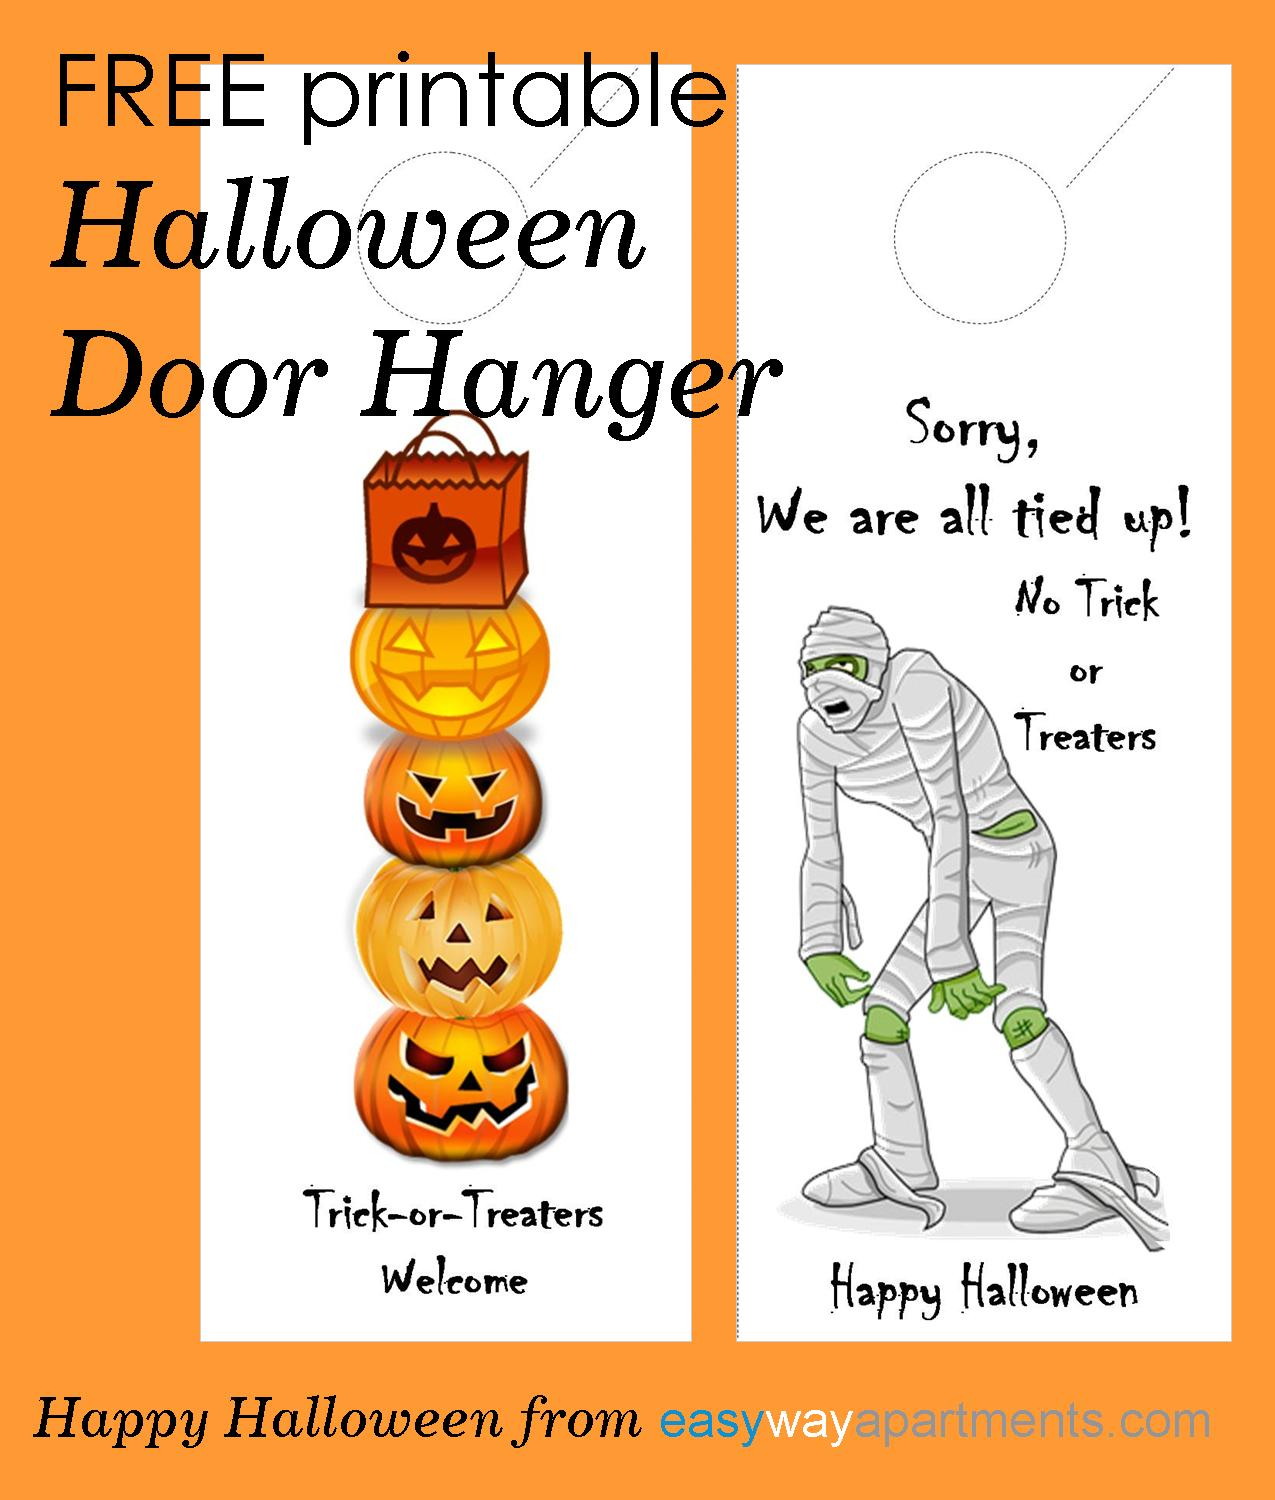 photograph about Printable Door Hanger referred to as Totally free printable Halloween Doorway Hanger Largest Household